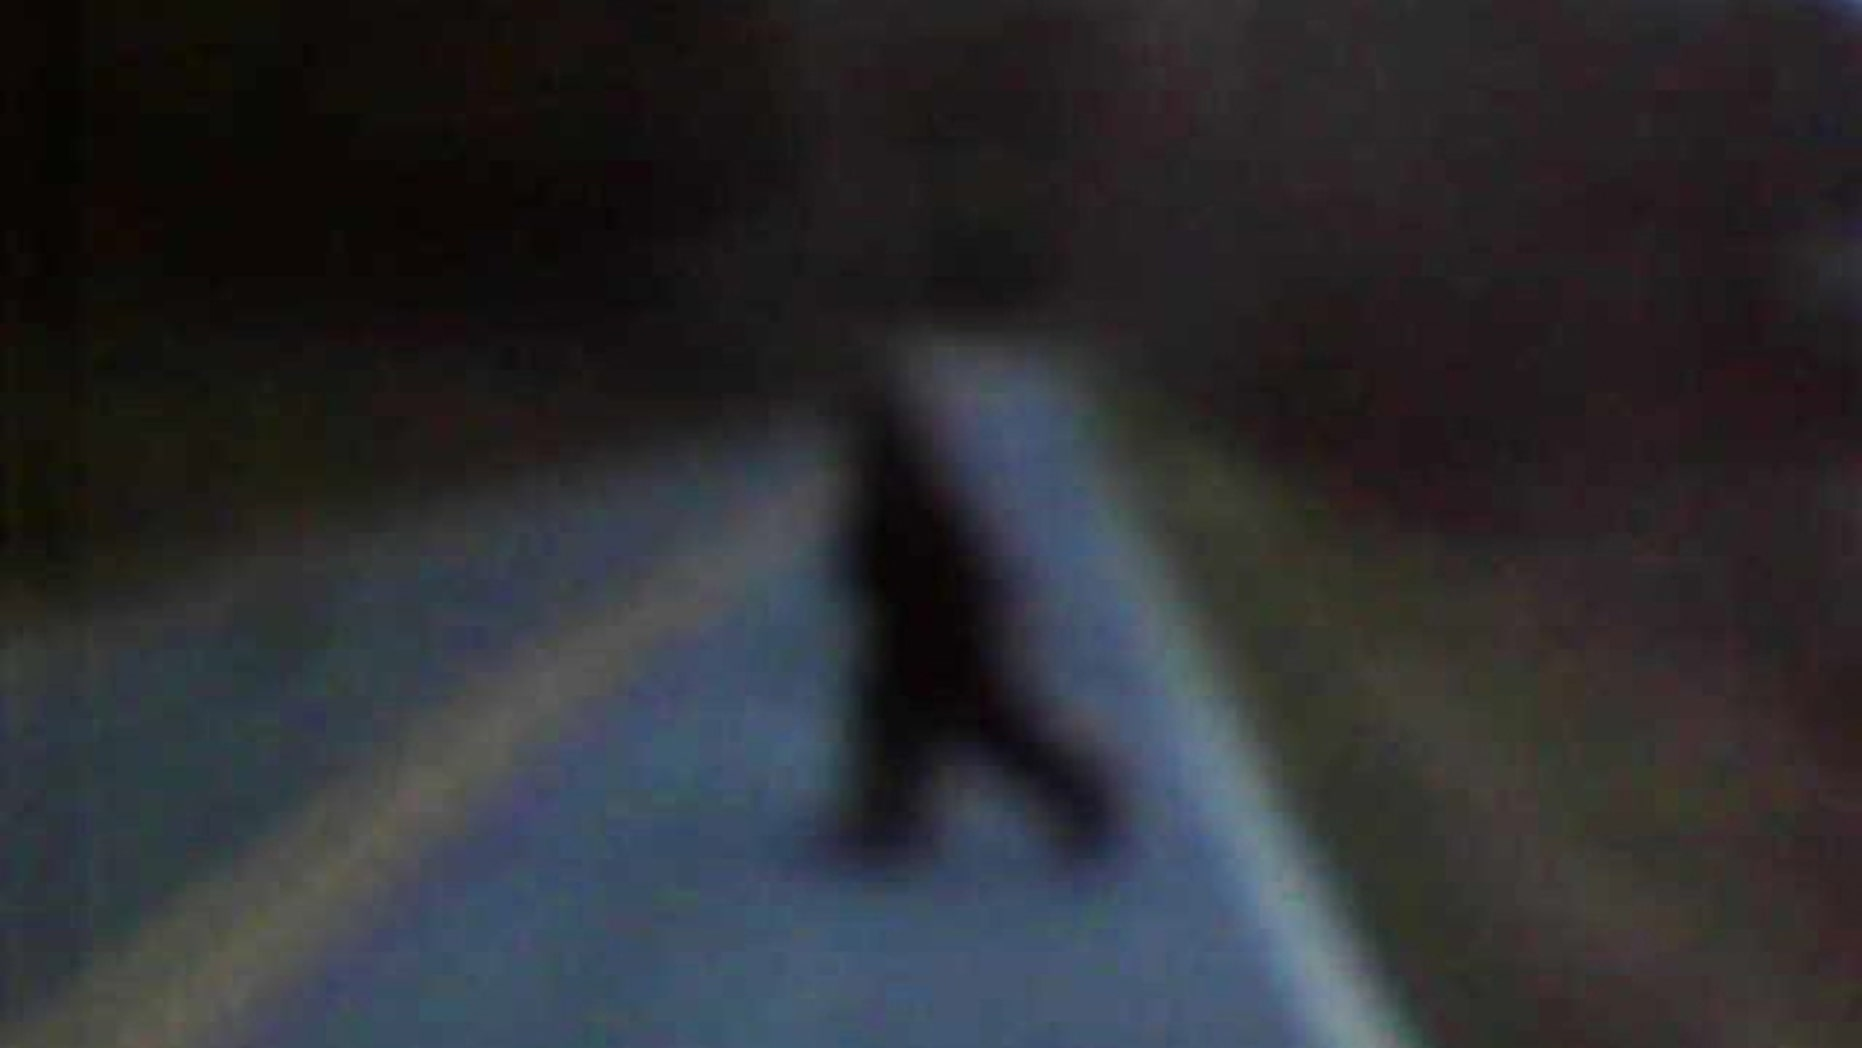 Bigfoot?